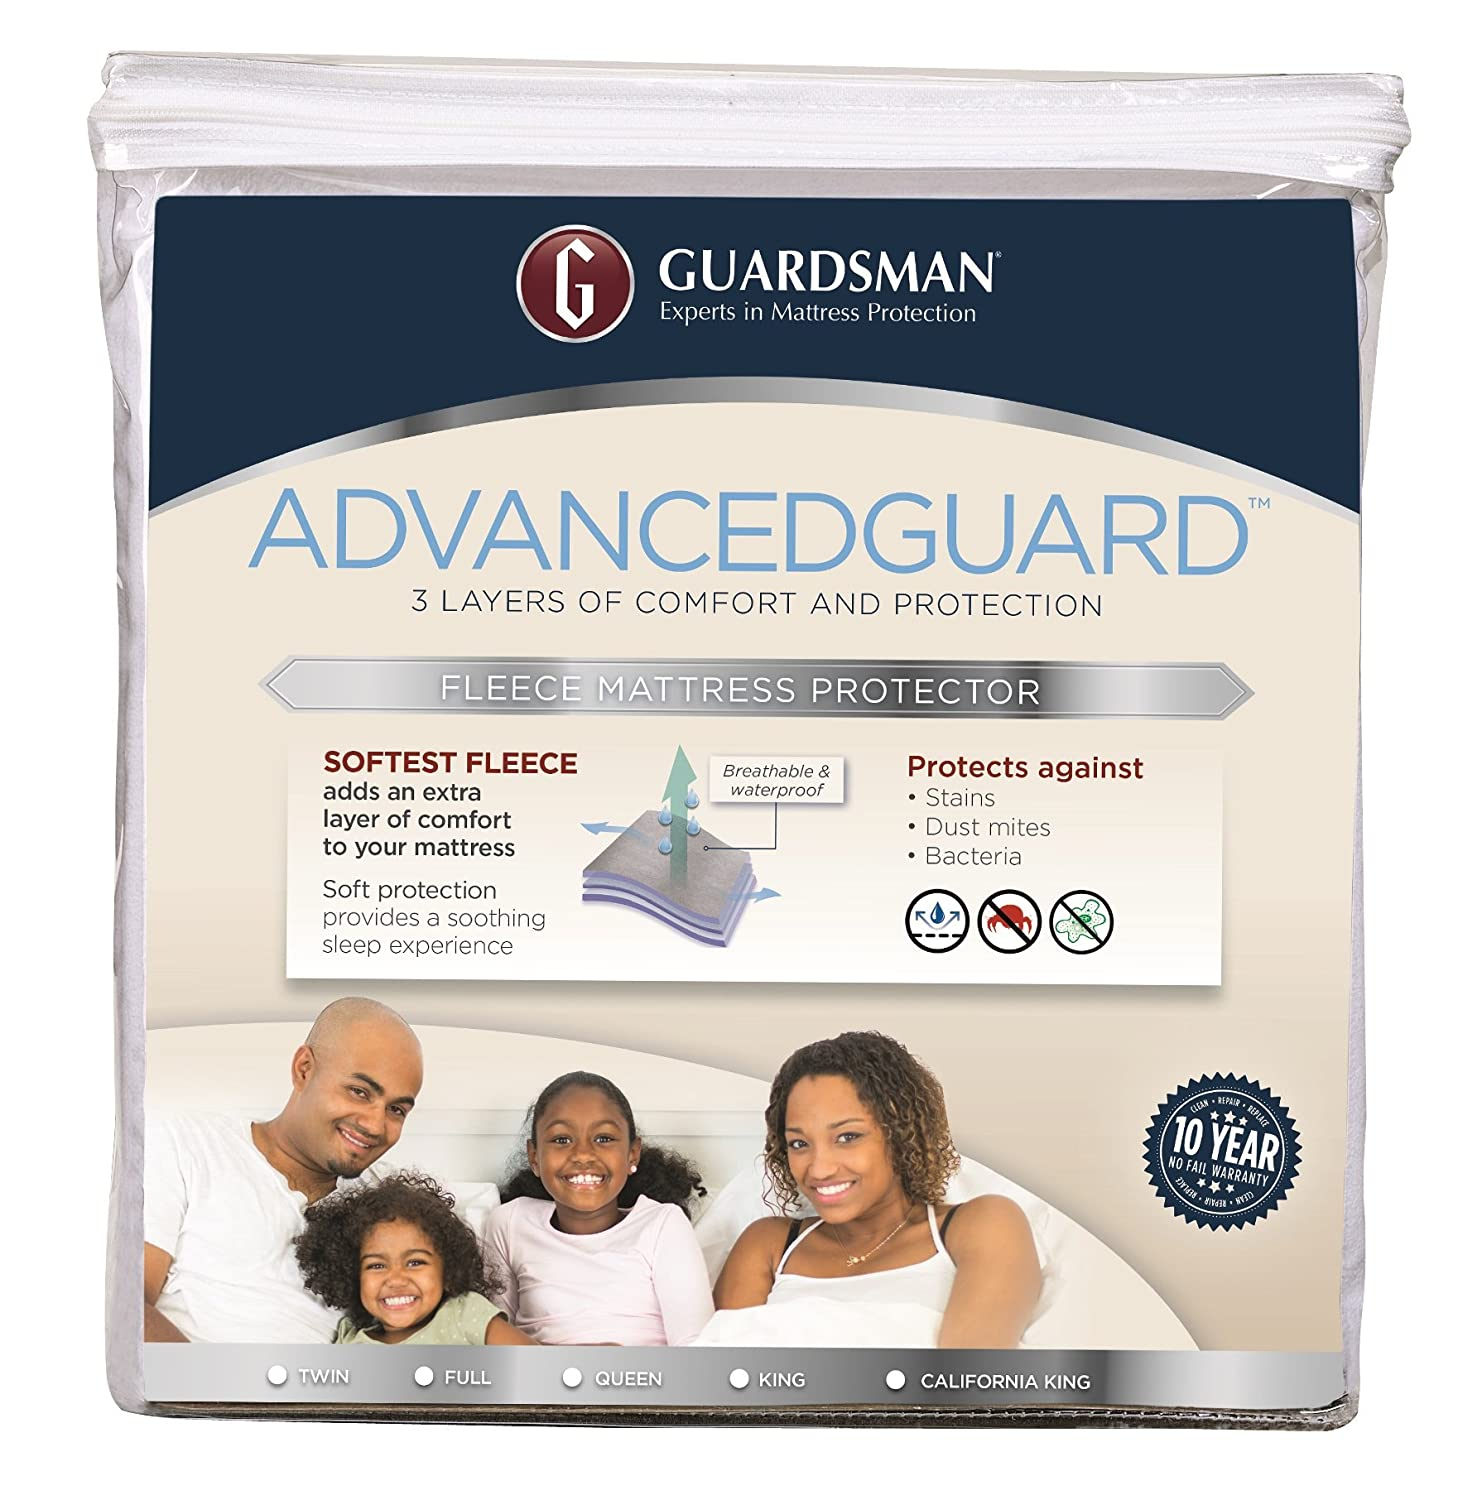 Guardsman AdvancedGuard Waterproof Mattress Protector - Full - 3 Layer Protection From Spills or Mishaps, Allergy Relief - 10 Year Warranty - Reusable(Packaging May Vary) Valspar 7977